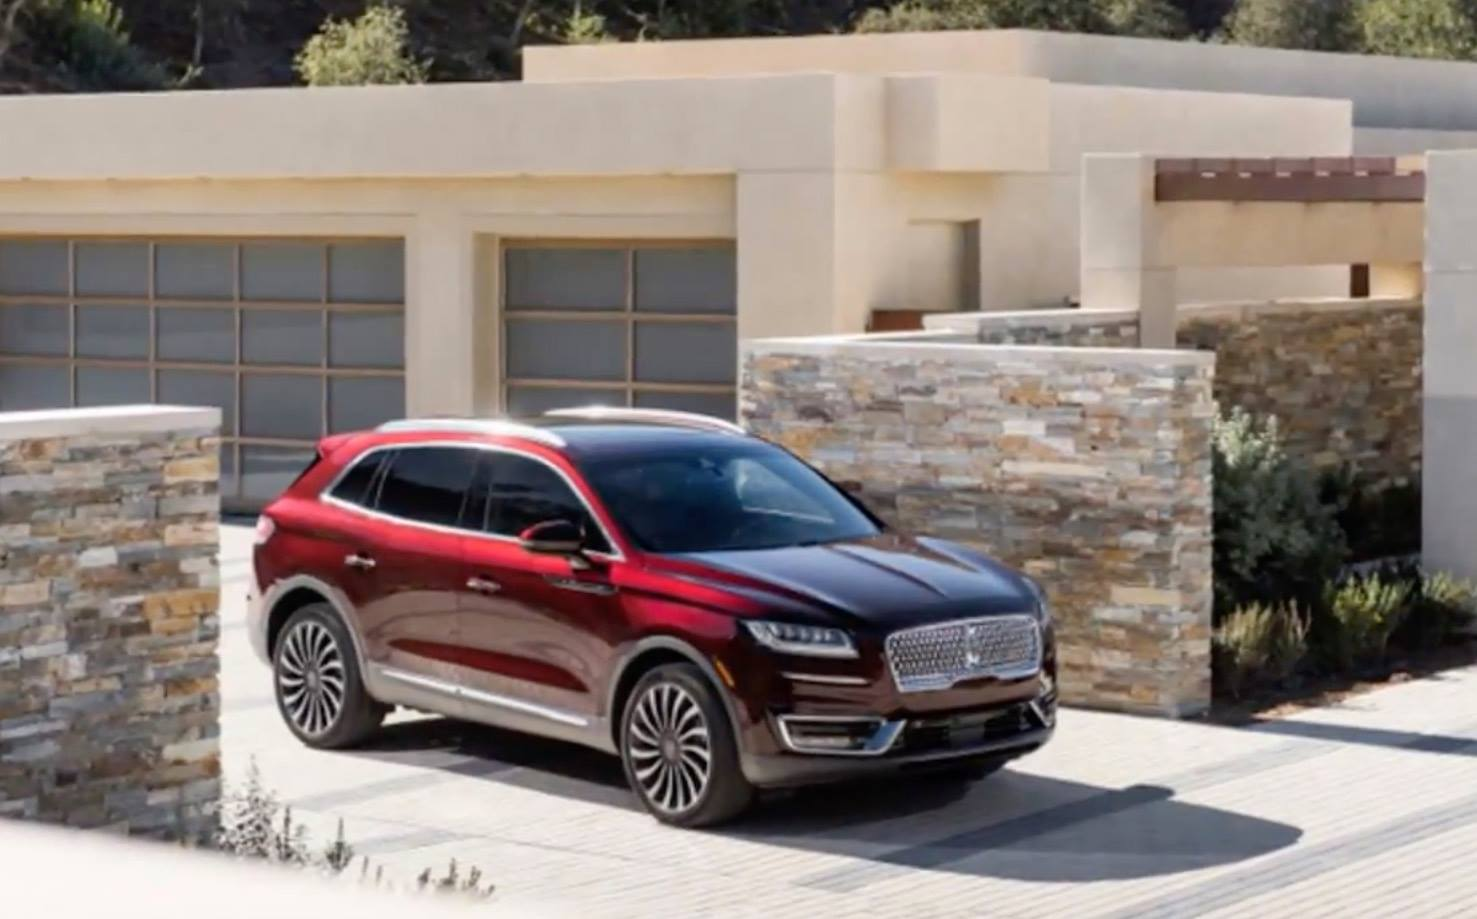 http://www.autoguide.com/blog/wp-content/gallery/2019-lincoln-nautilus/2019-Lincoln-Nautilus00003.jpg